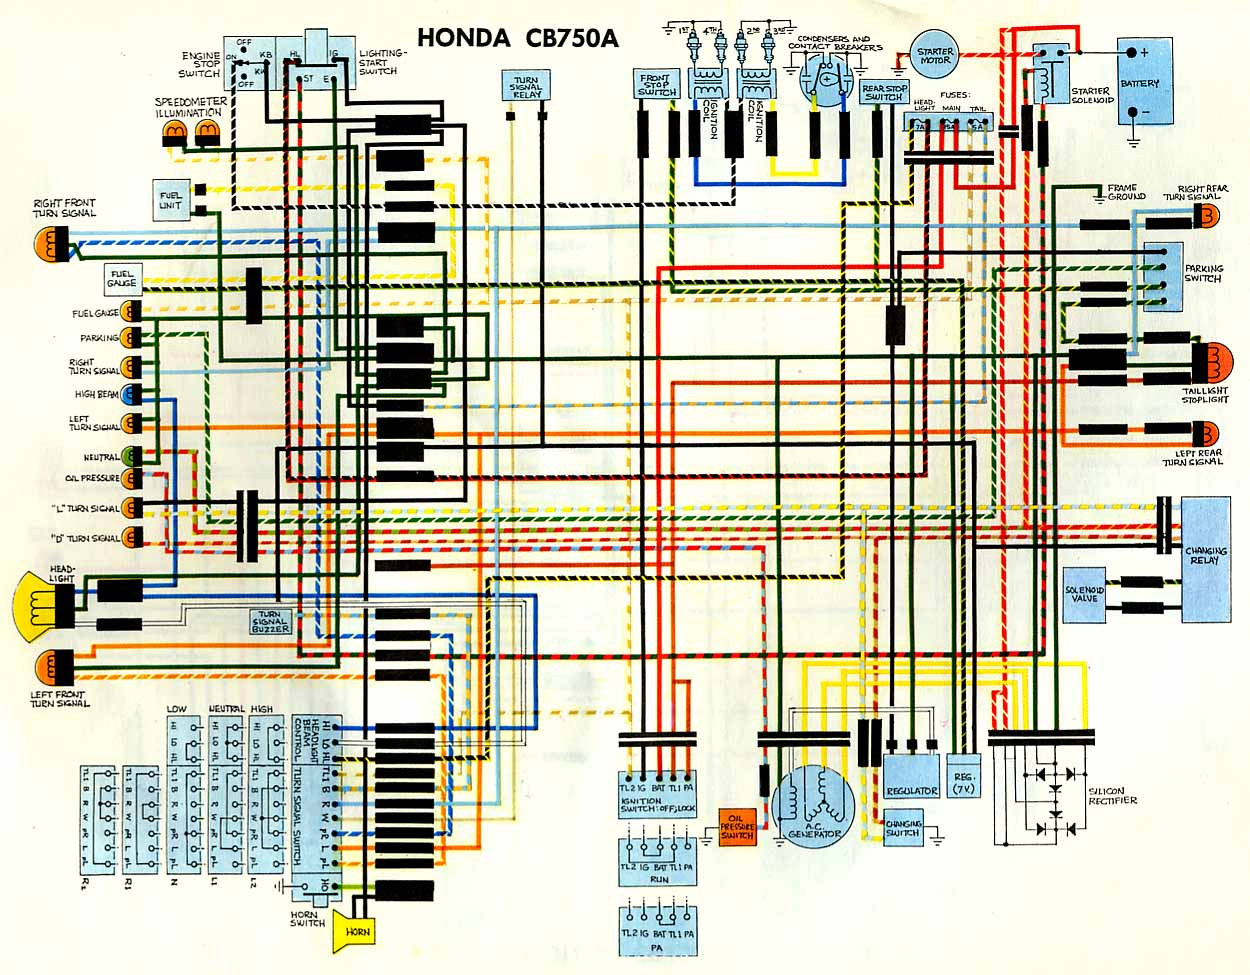 Honda_CB750A_Hondamatic_Wiring_Diagram 1999 yamaha 650 wiring diagram wire data schema \u2022